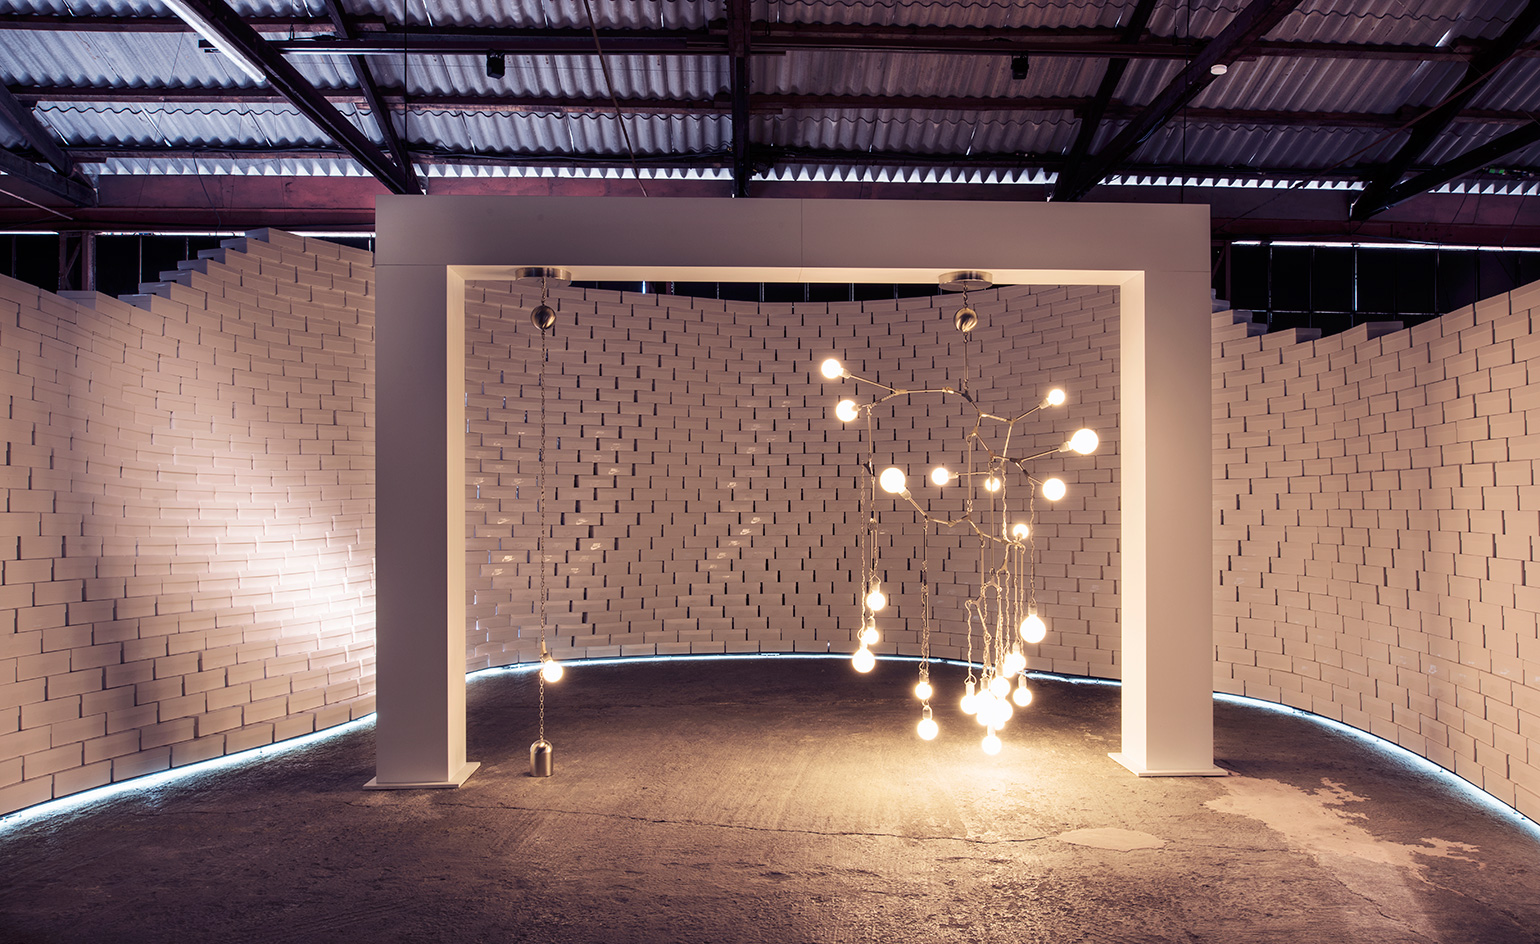 Lindsey Adelman's commission, a light installation inspired by the 'Natural Motion' of plants